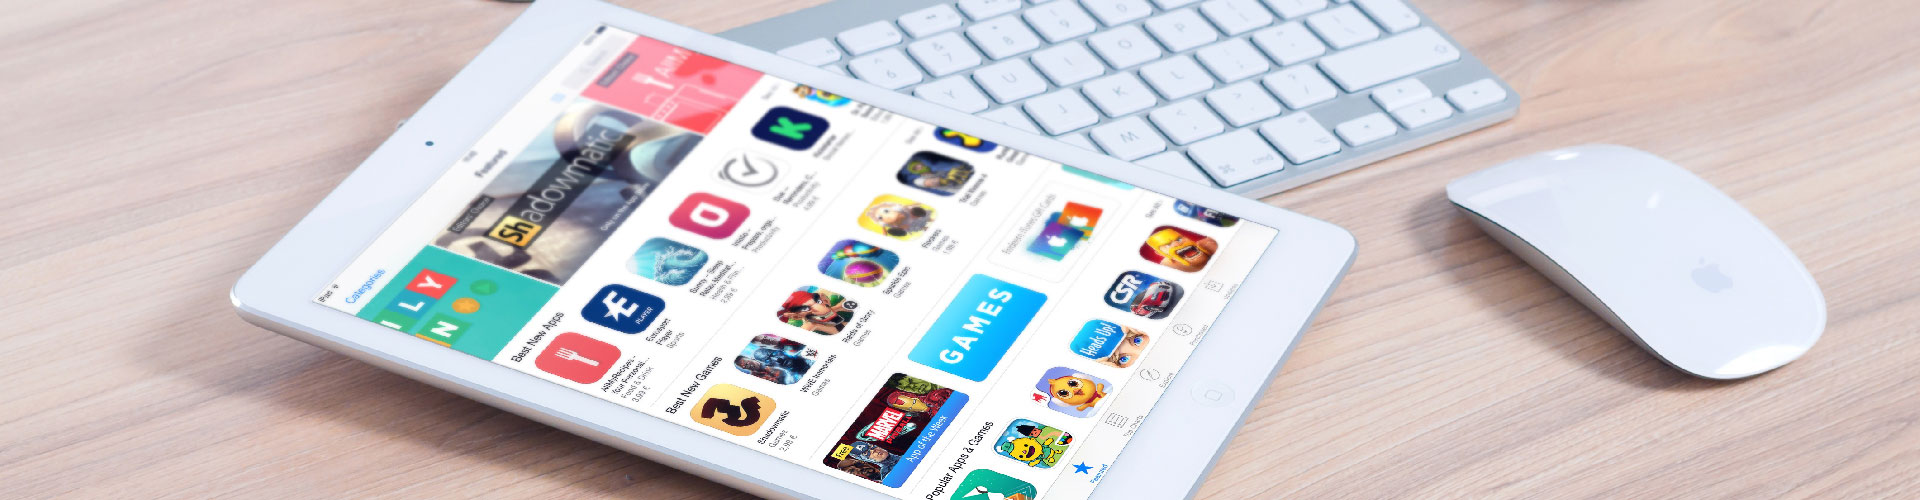 Header image of As iOS shrinks, Android shows strongest growth in two years